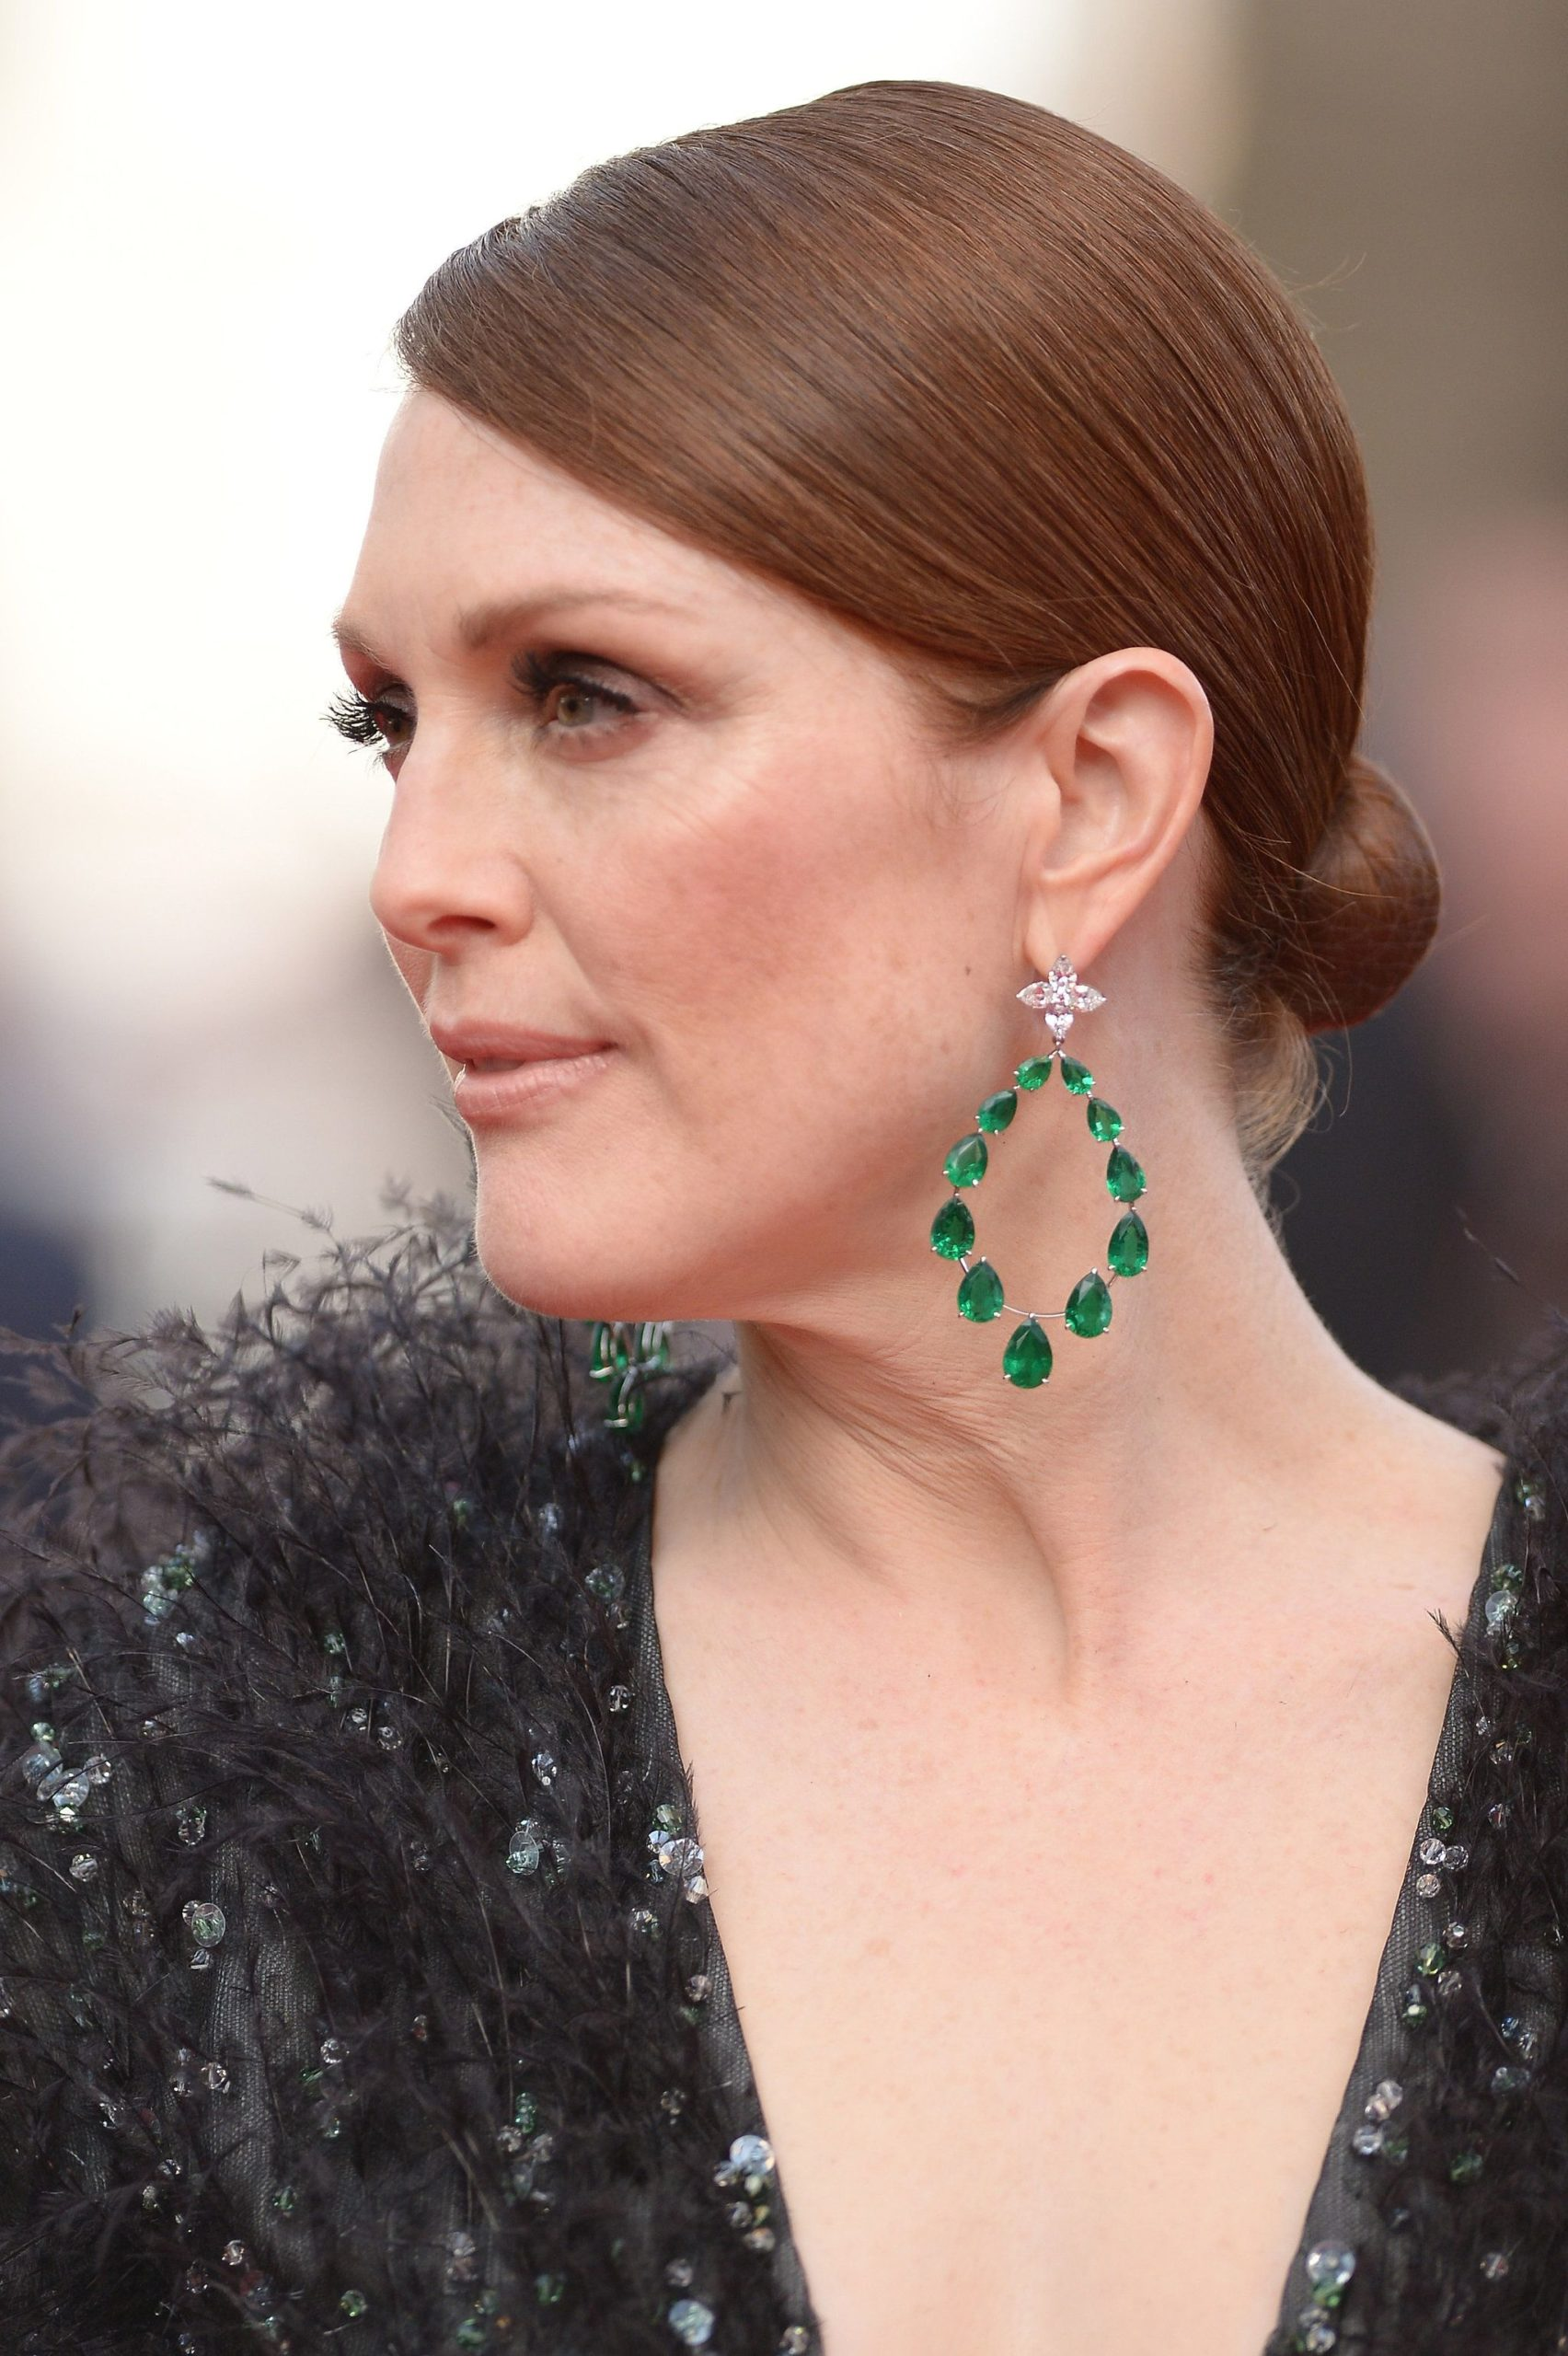 Emerald Hoop Earrings Styling Guide and Various Types